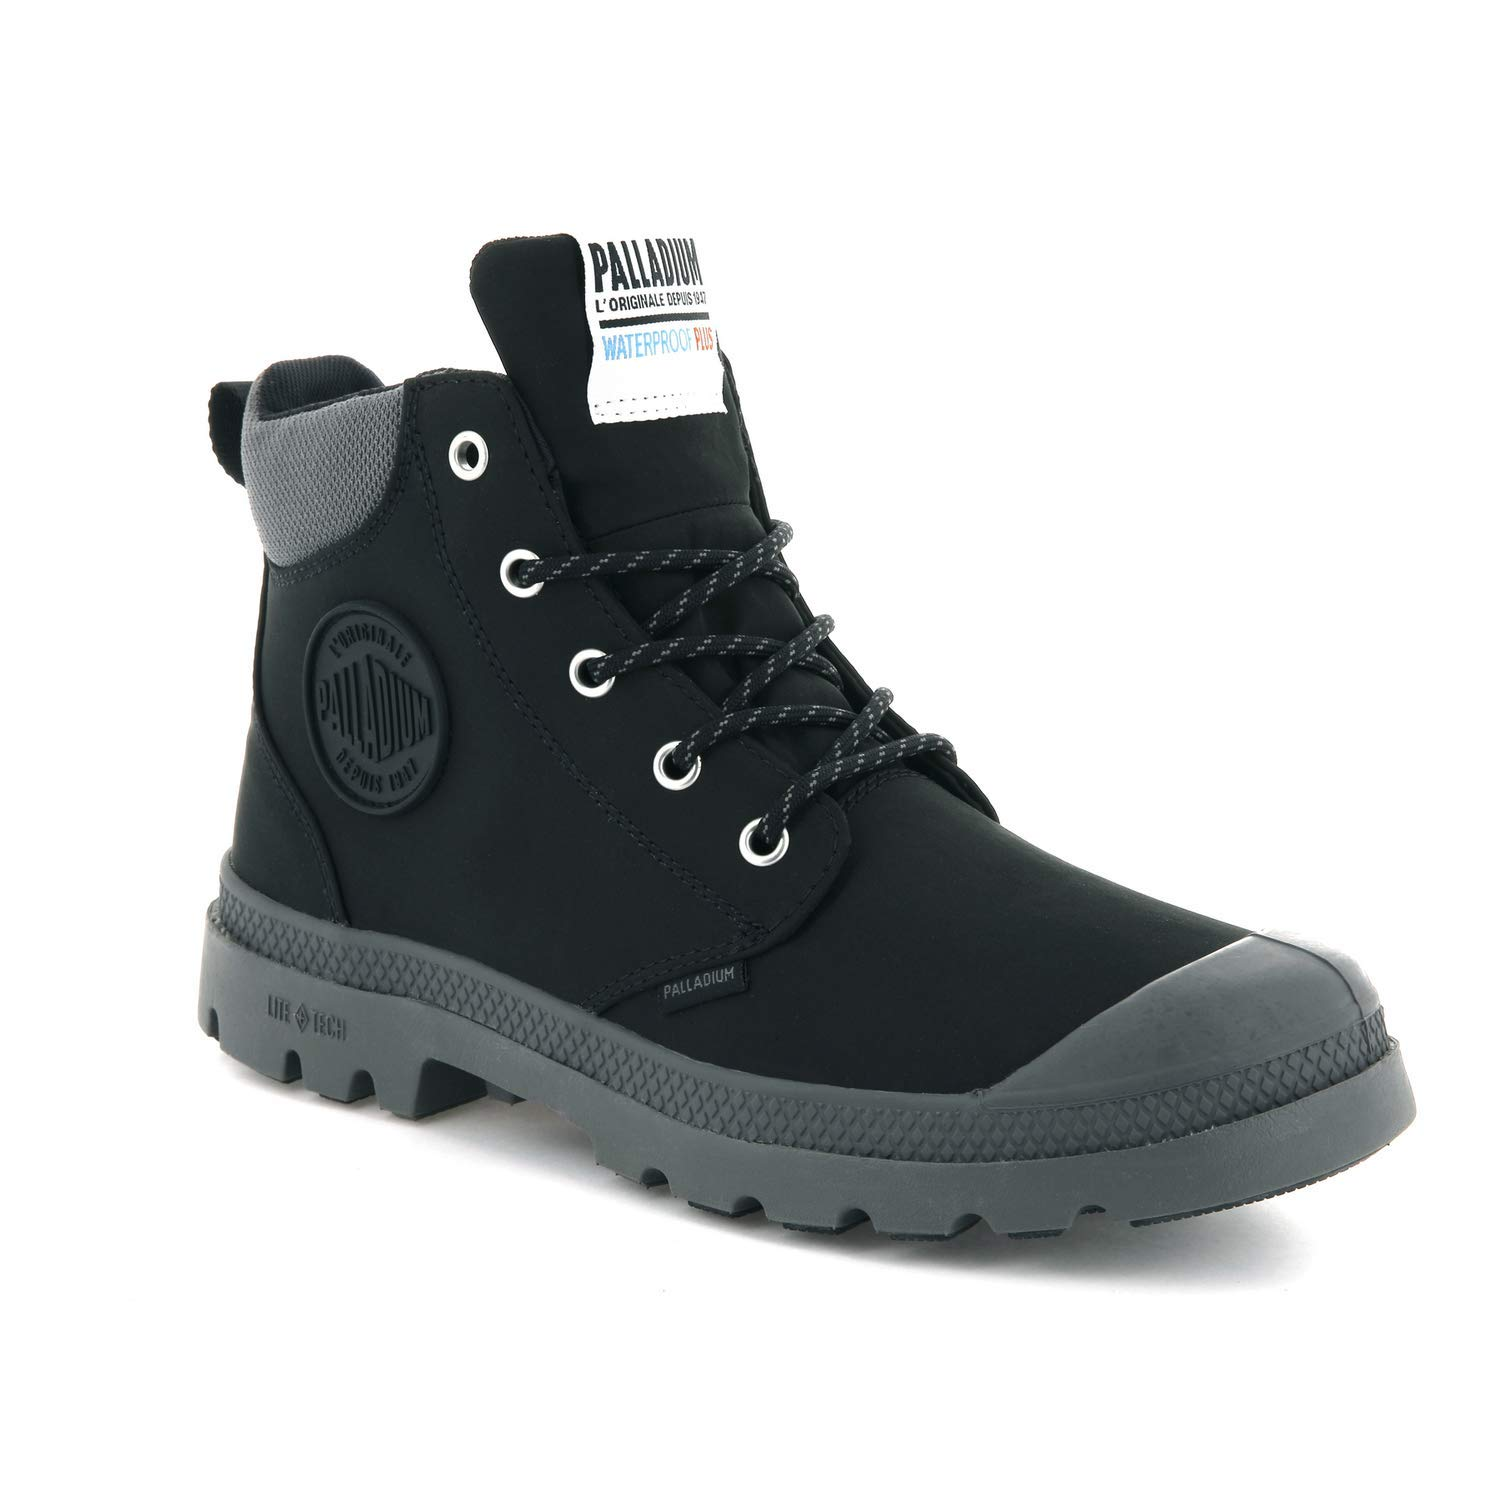 Palladium Pampa Lite Cuff WP Bottes /& Bottines Souples Mixte Adulte